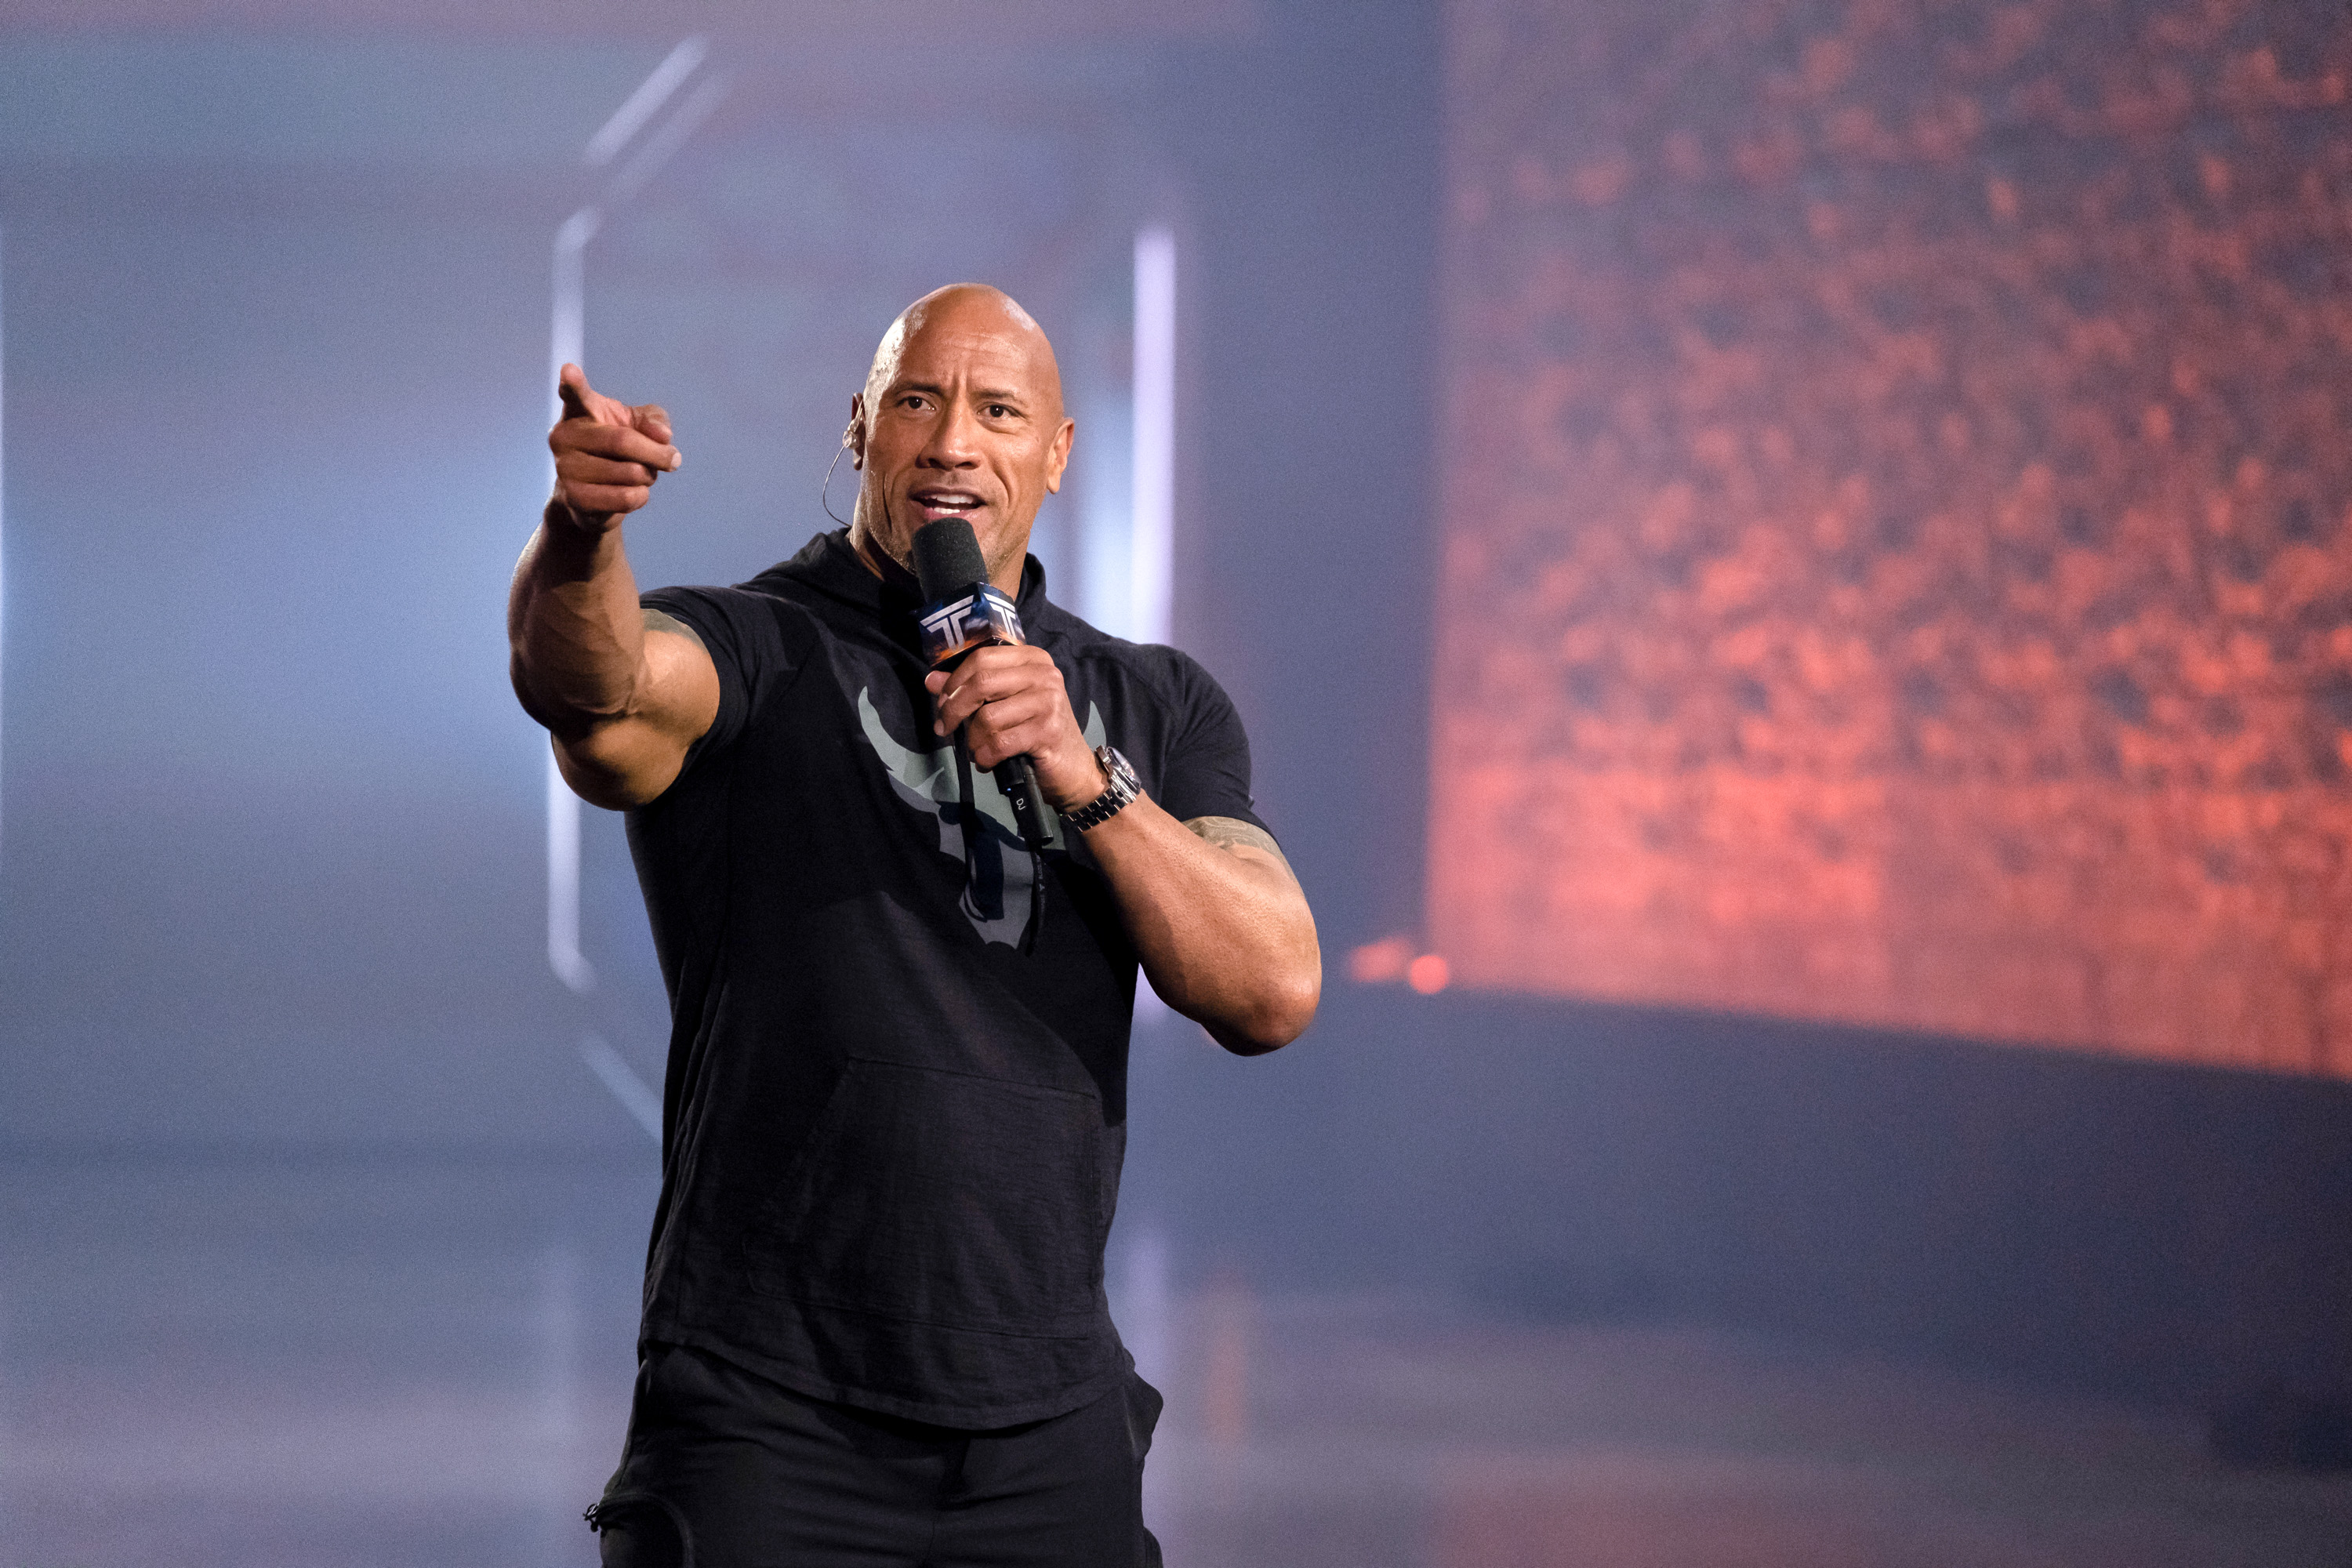 'The Rock' buys part of bankrupt XFL pro football league thumbnail